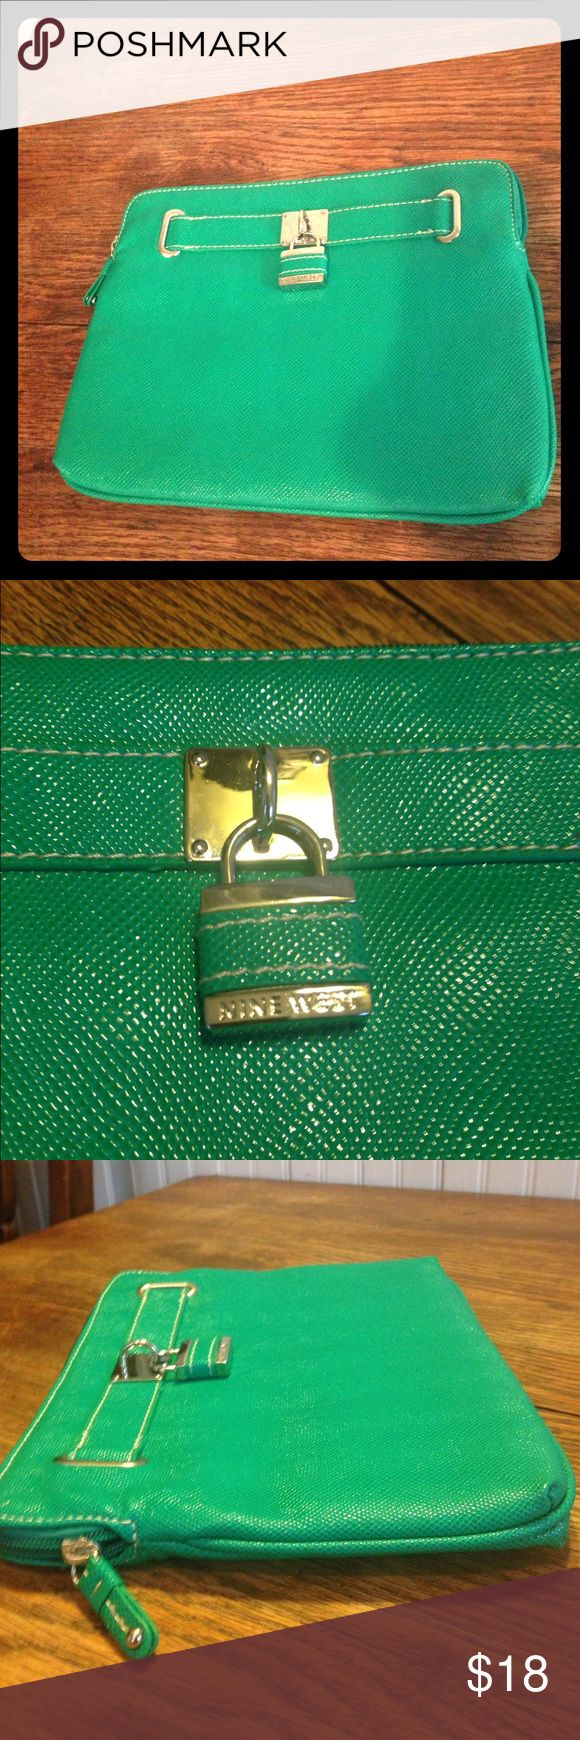 """Nine West green clutch Nine West green clutch , silver tone hardware, fun lock embellishments, zippers no strap or handle, leopard Nine West lining inside, 10.5"""" across, 8"""" high, .75"""" wide, great condition Nine West Bags Clutches & Wristlets"""